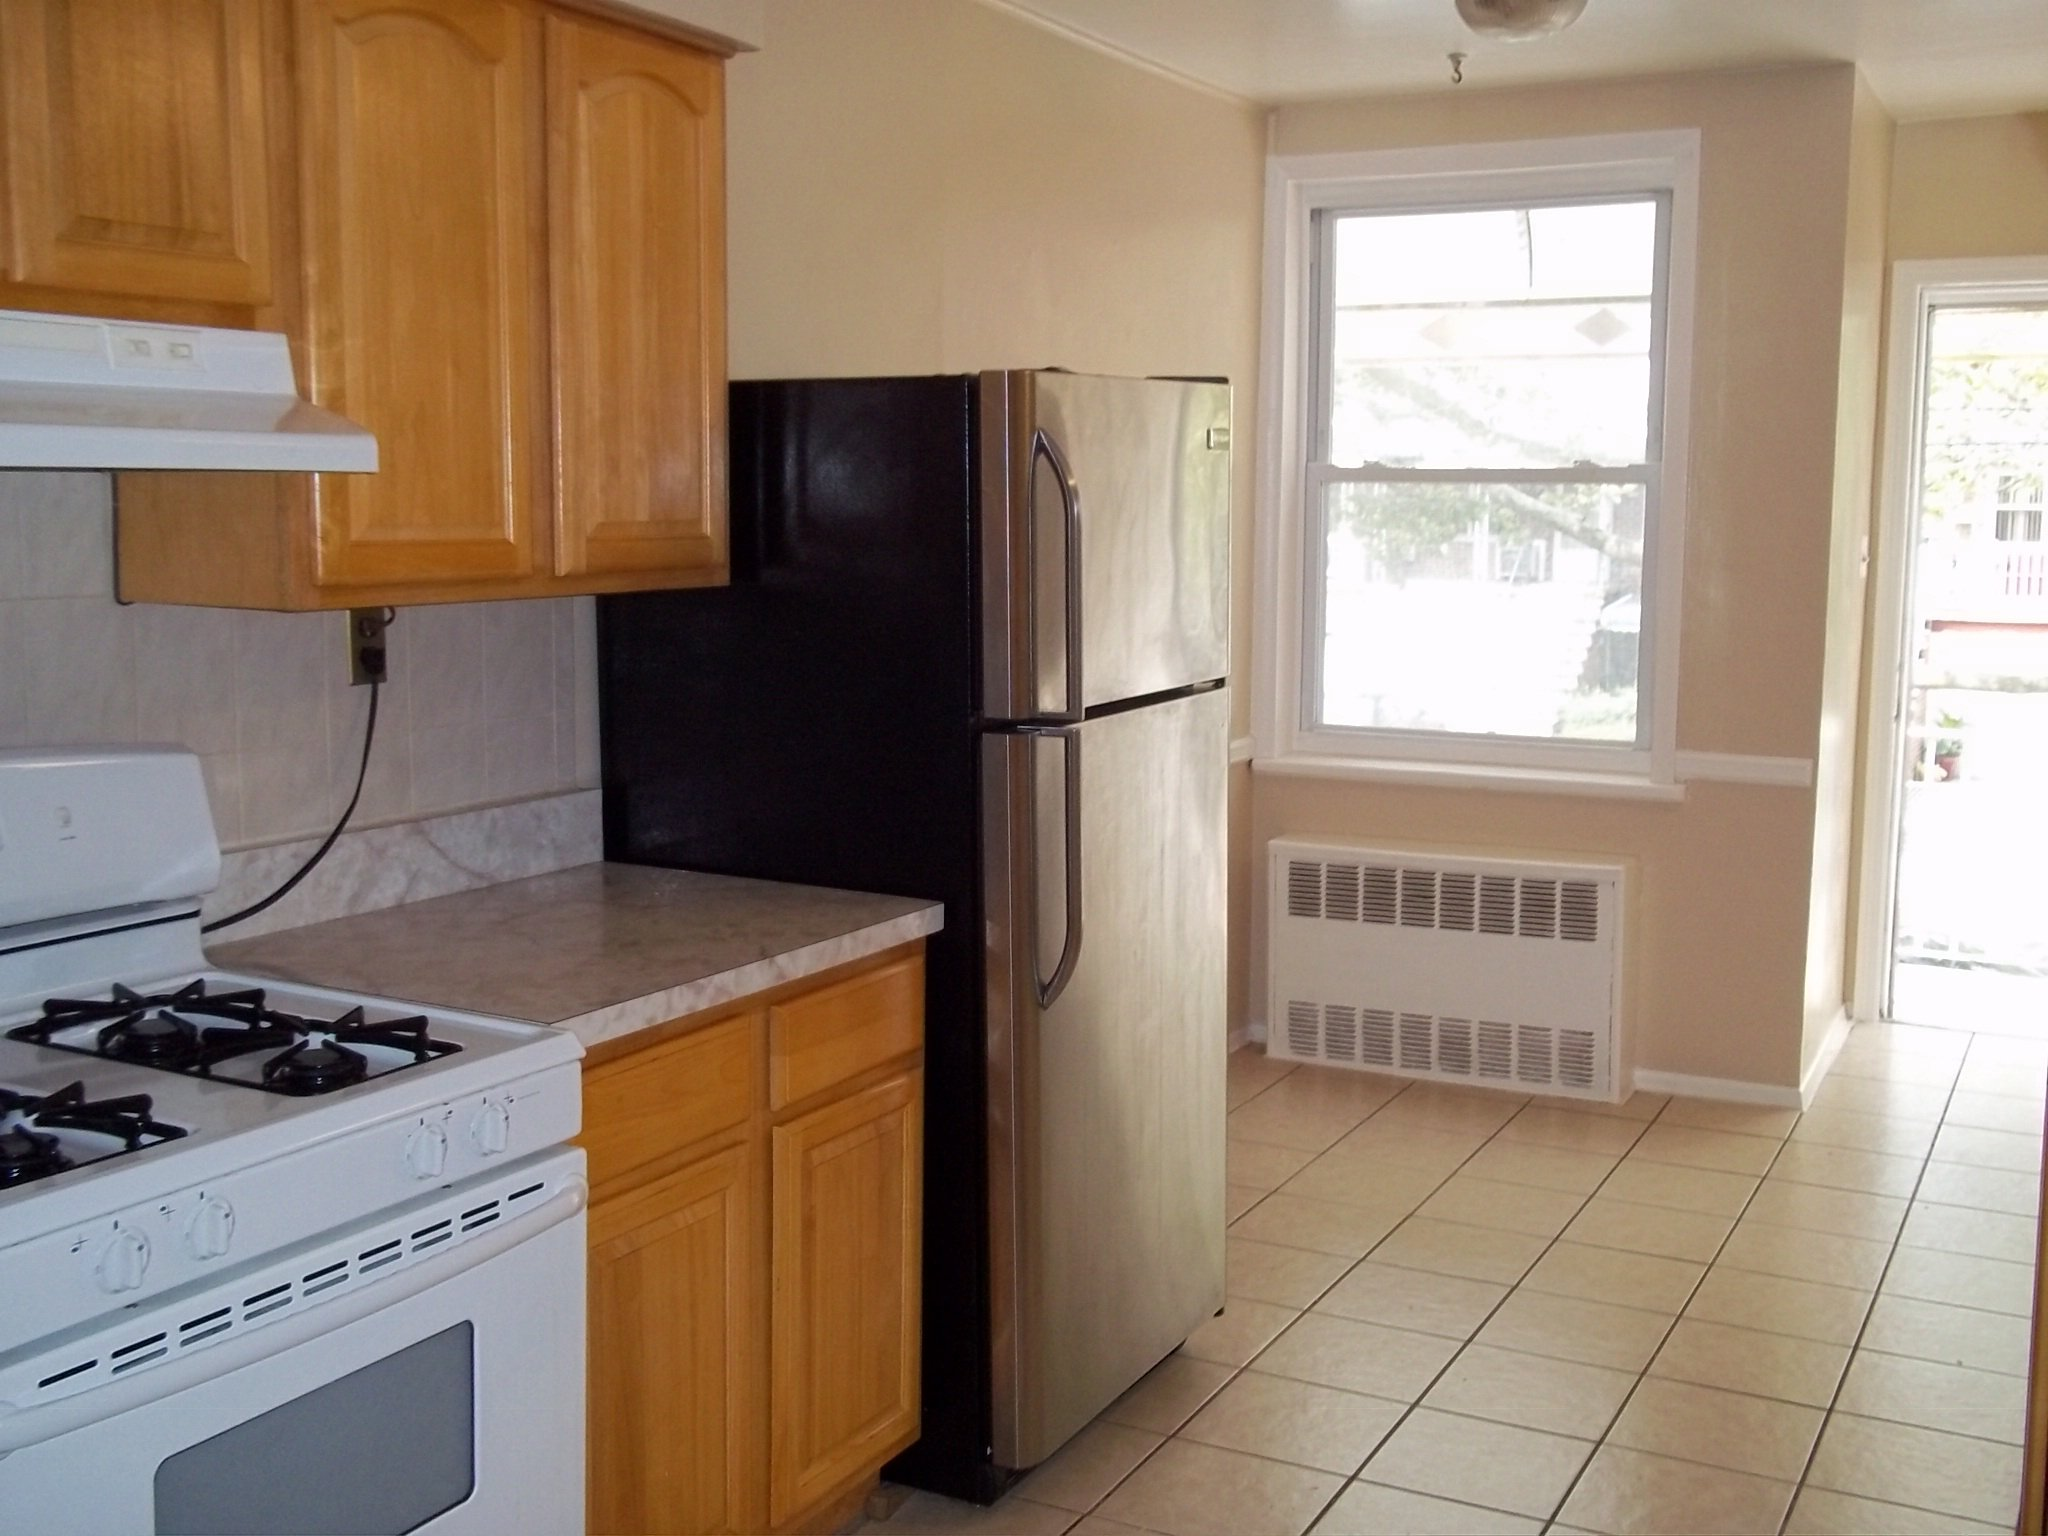 2 bedroom canarsie apartment for rent brooklyn crg3097 for Two bedroom apt in bed stuy area